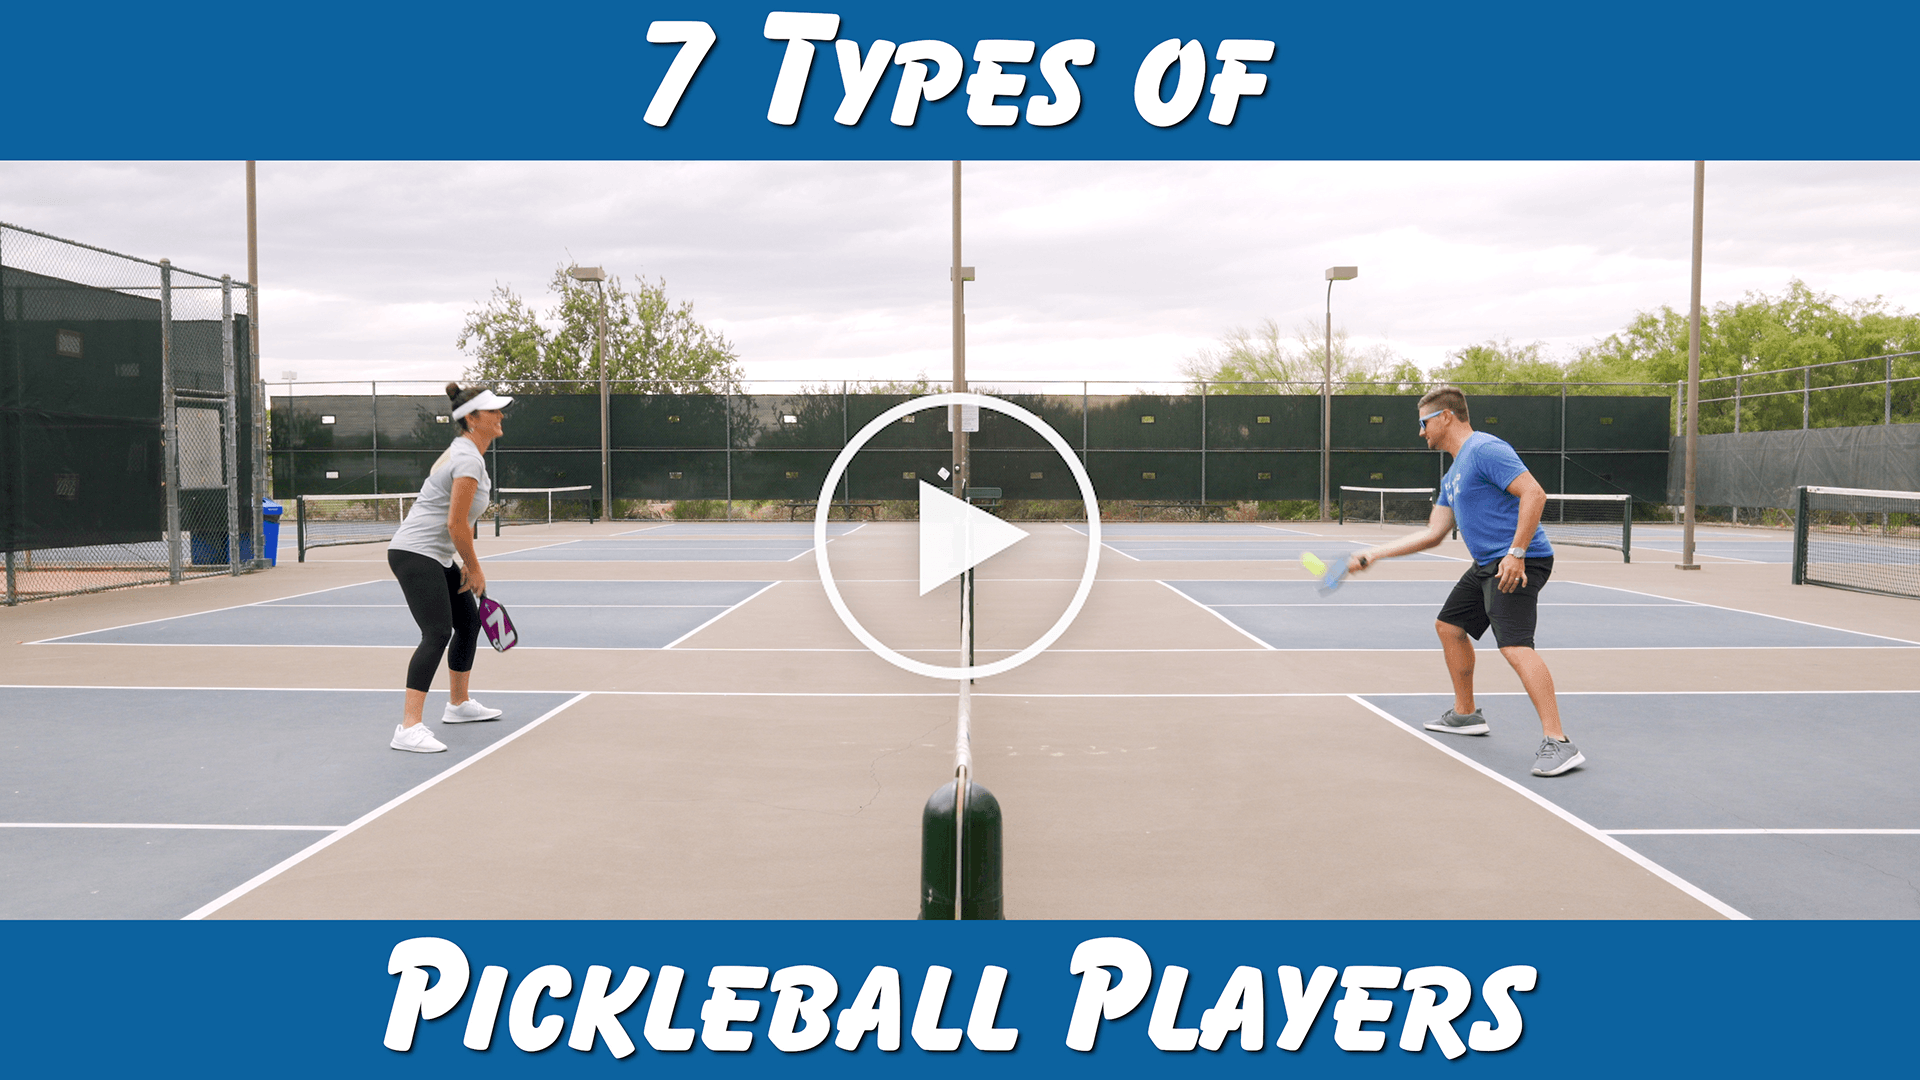 7 Types of Pickleball Players | #FunnyFriday